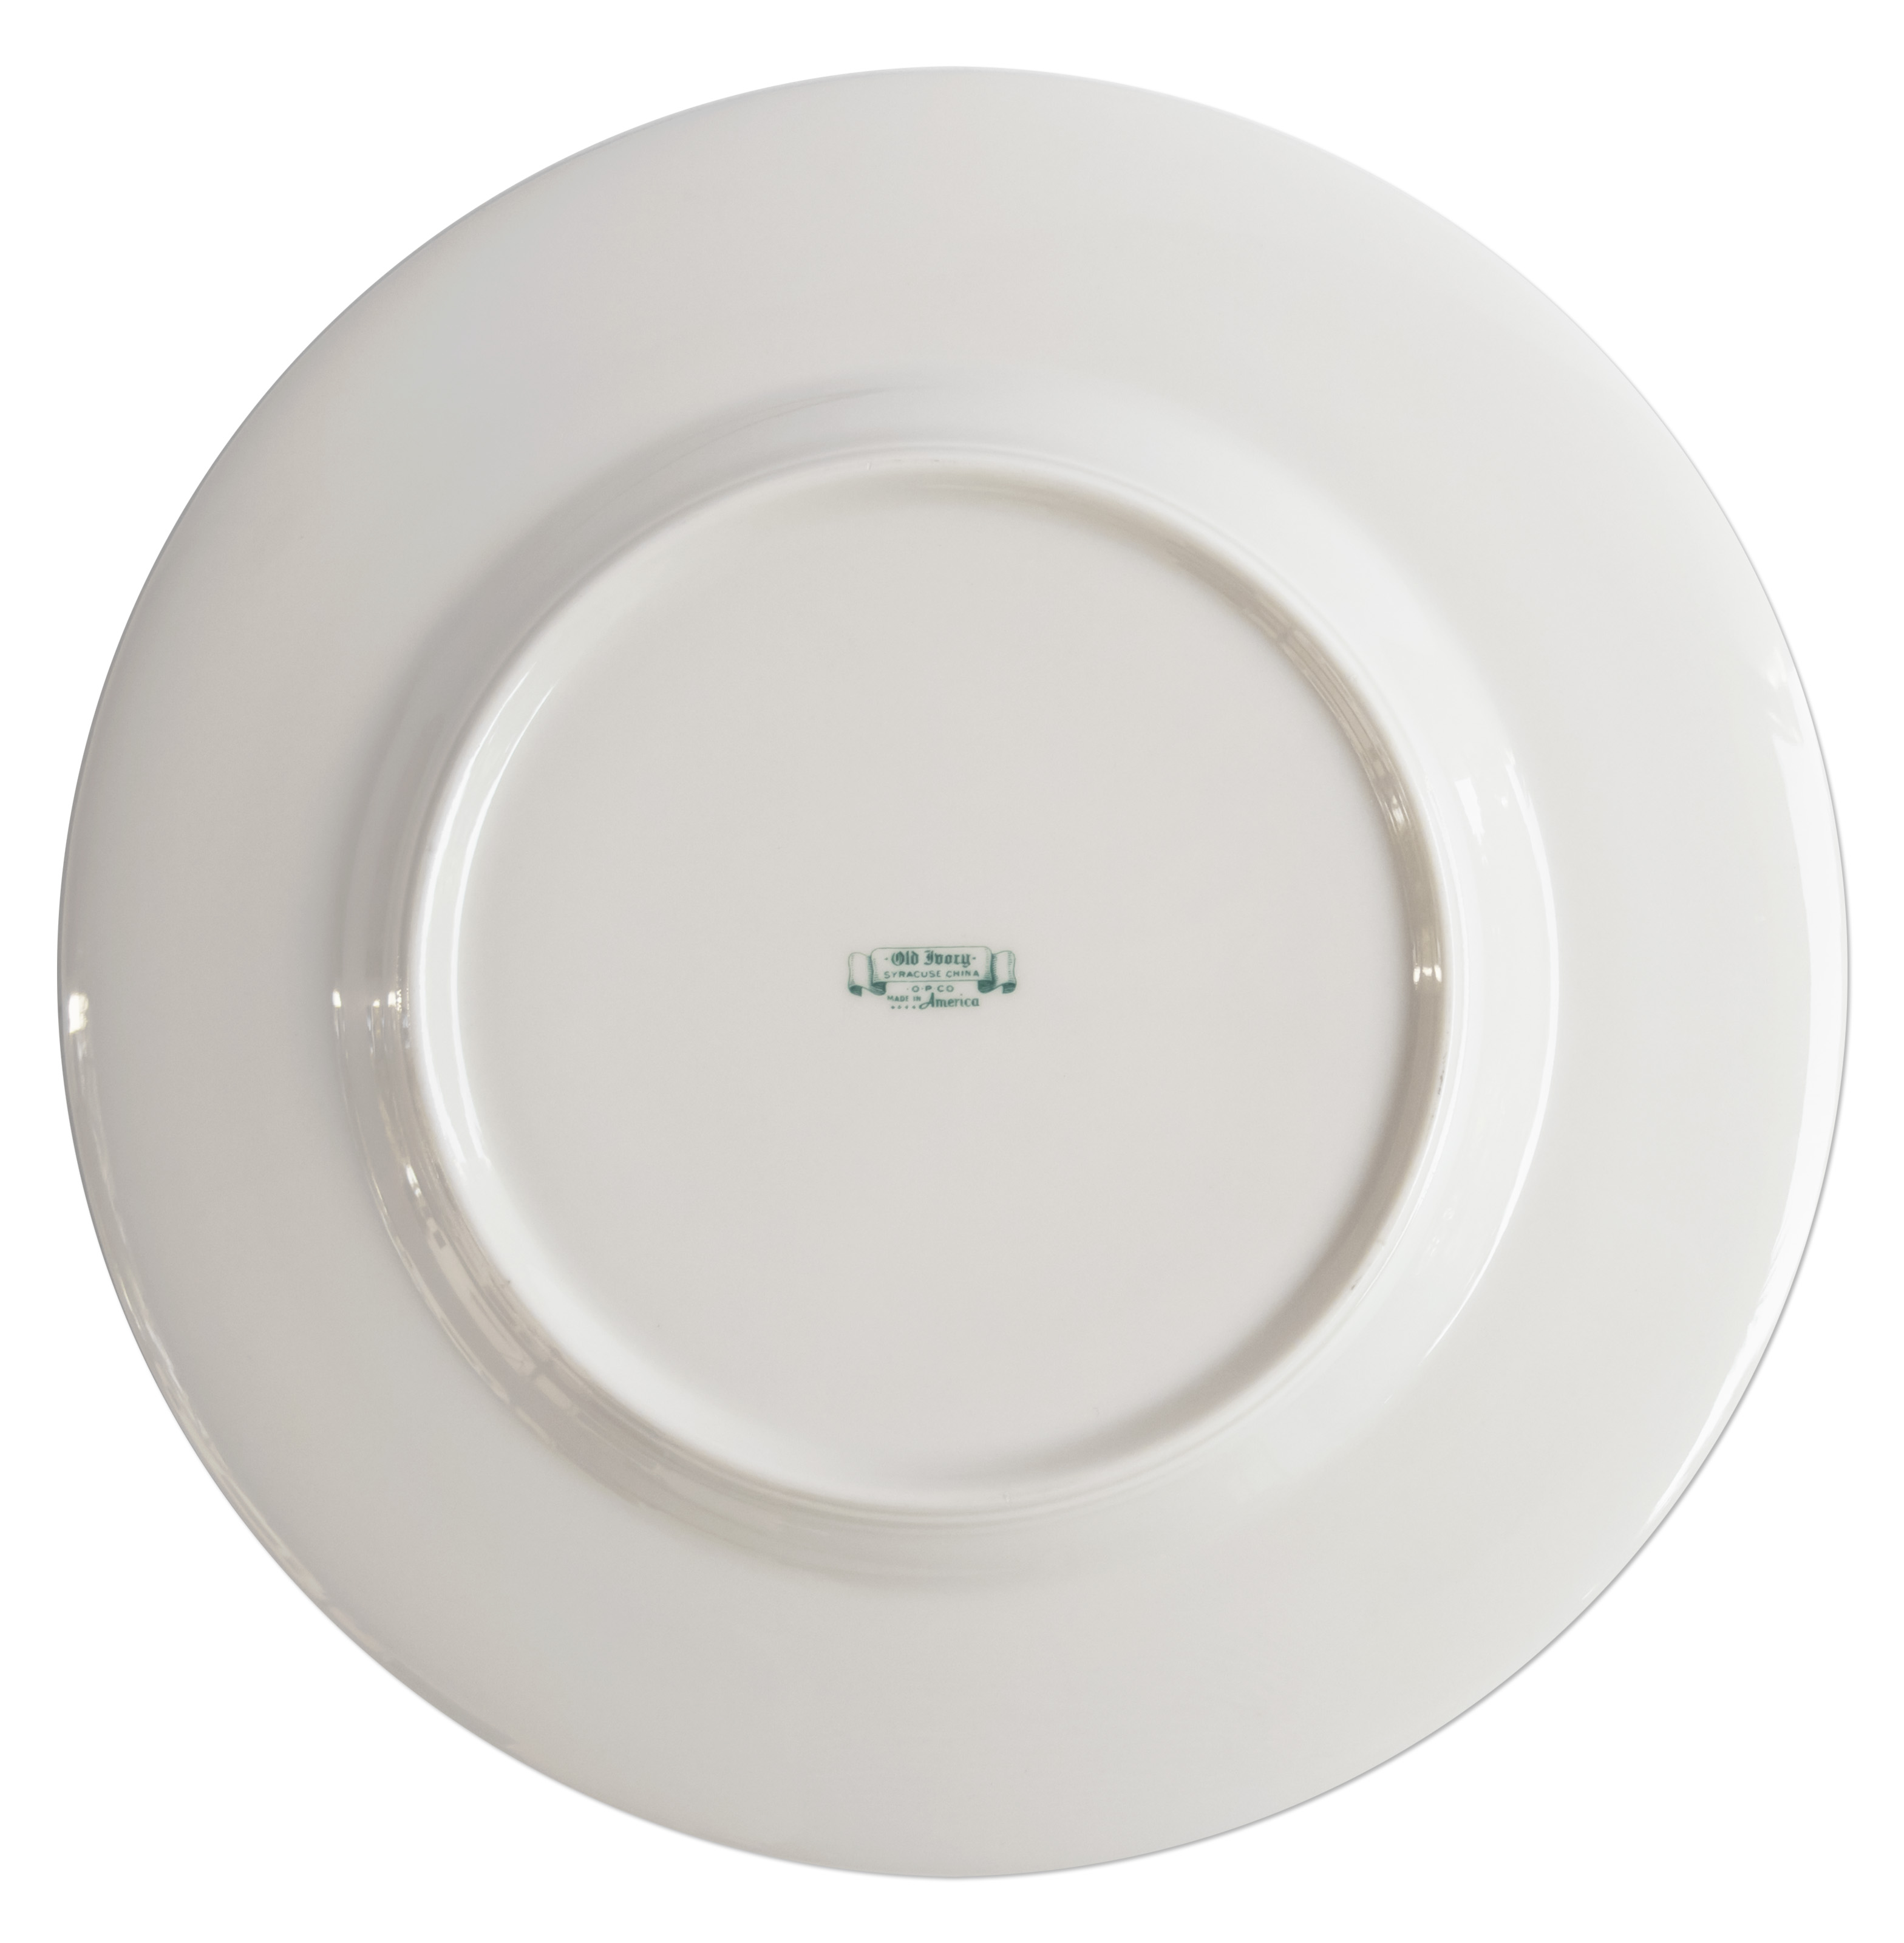 China Dinner Plate Used During The Reagan